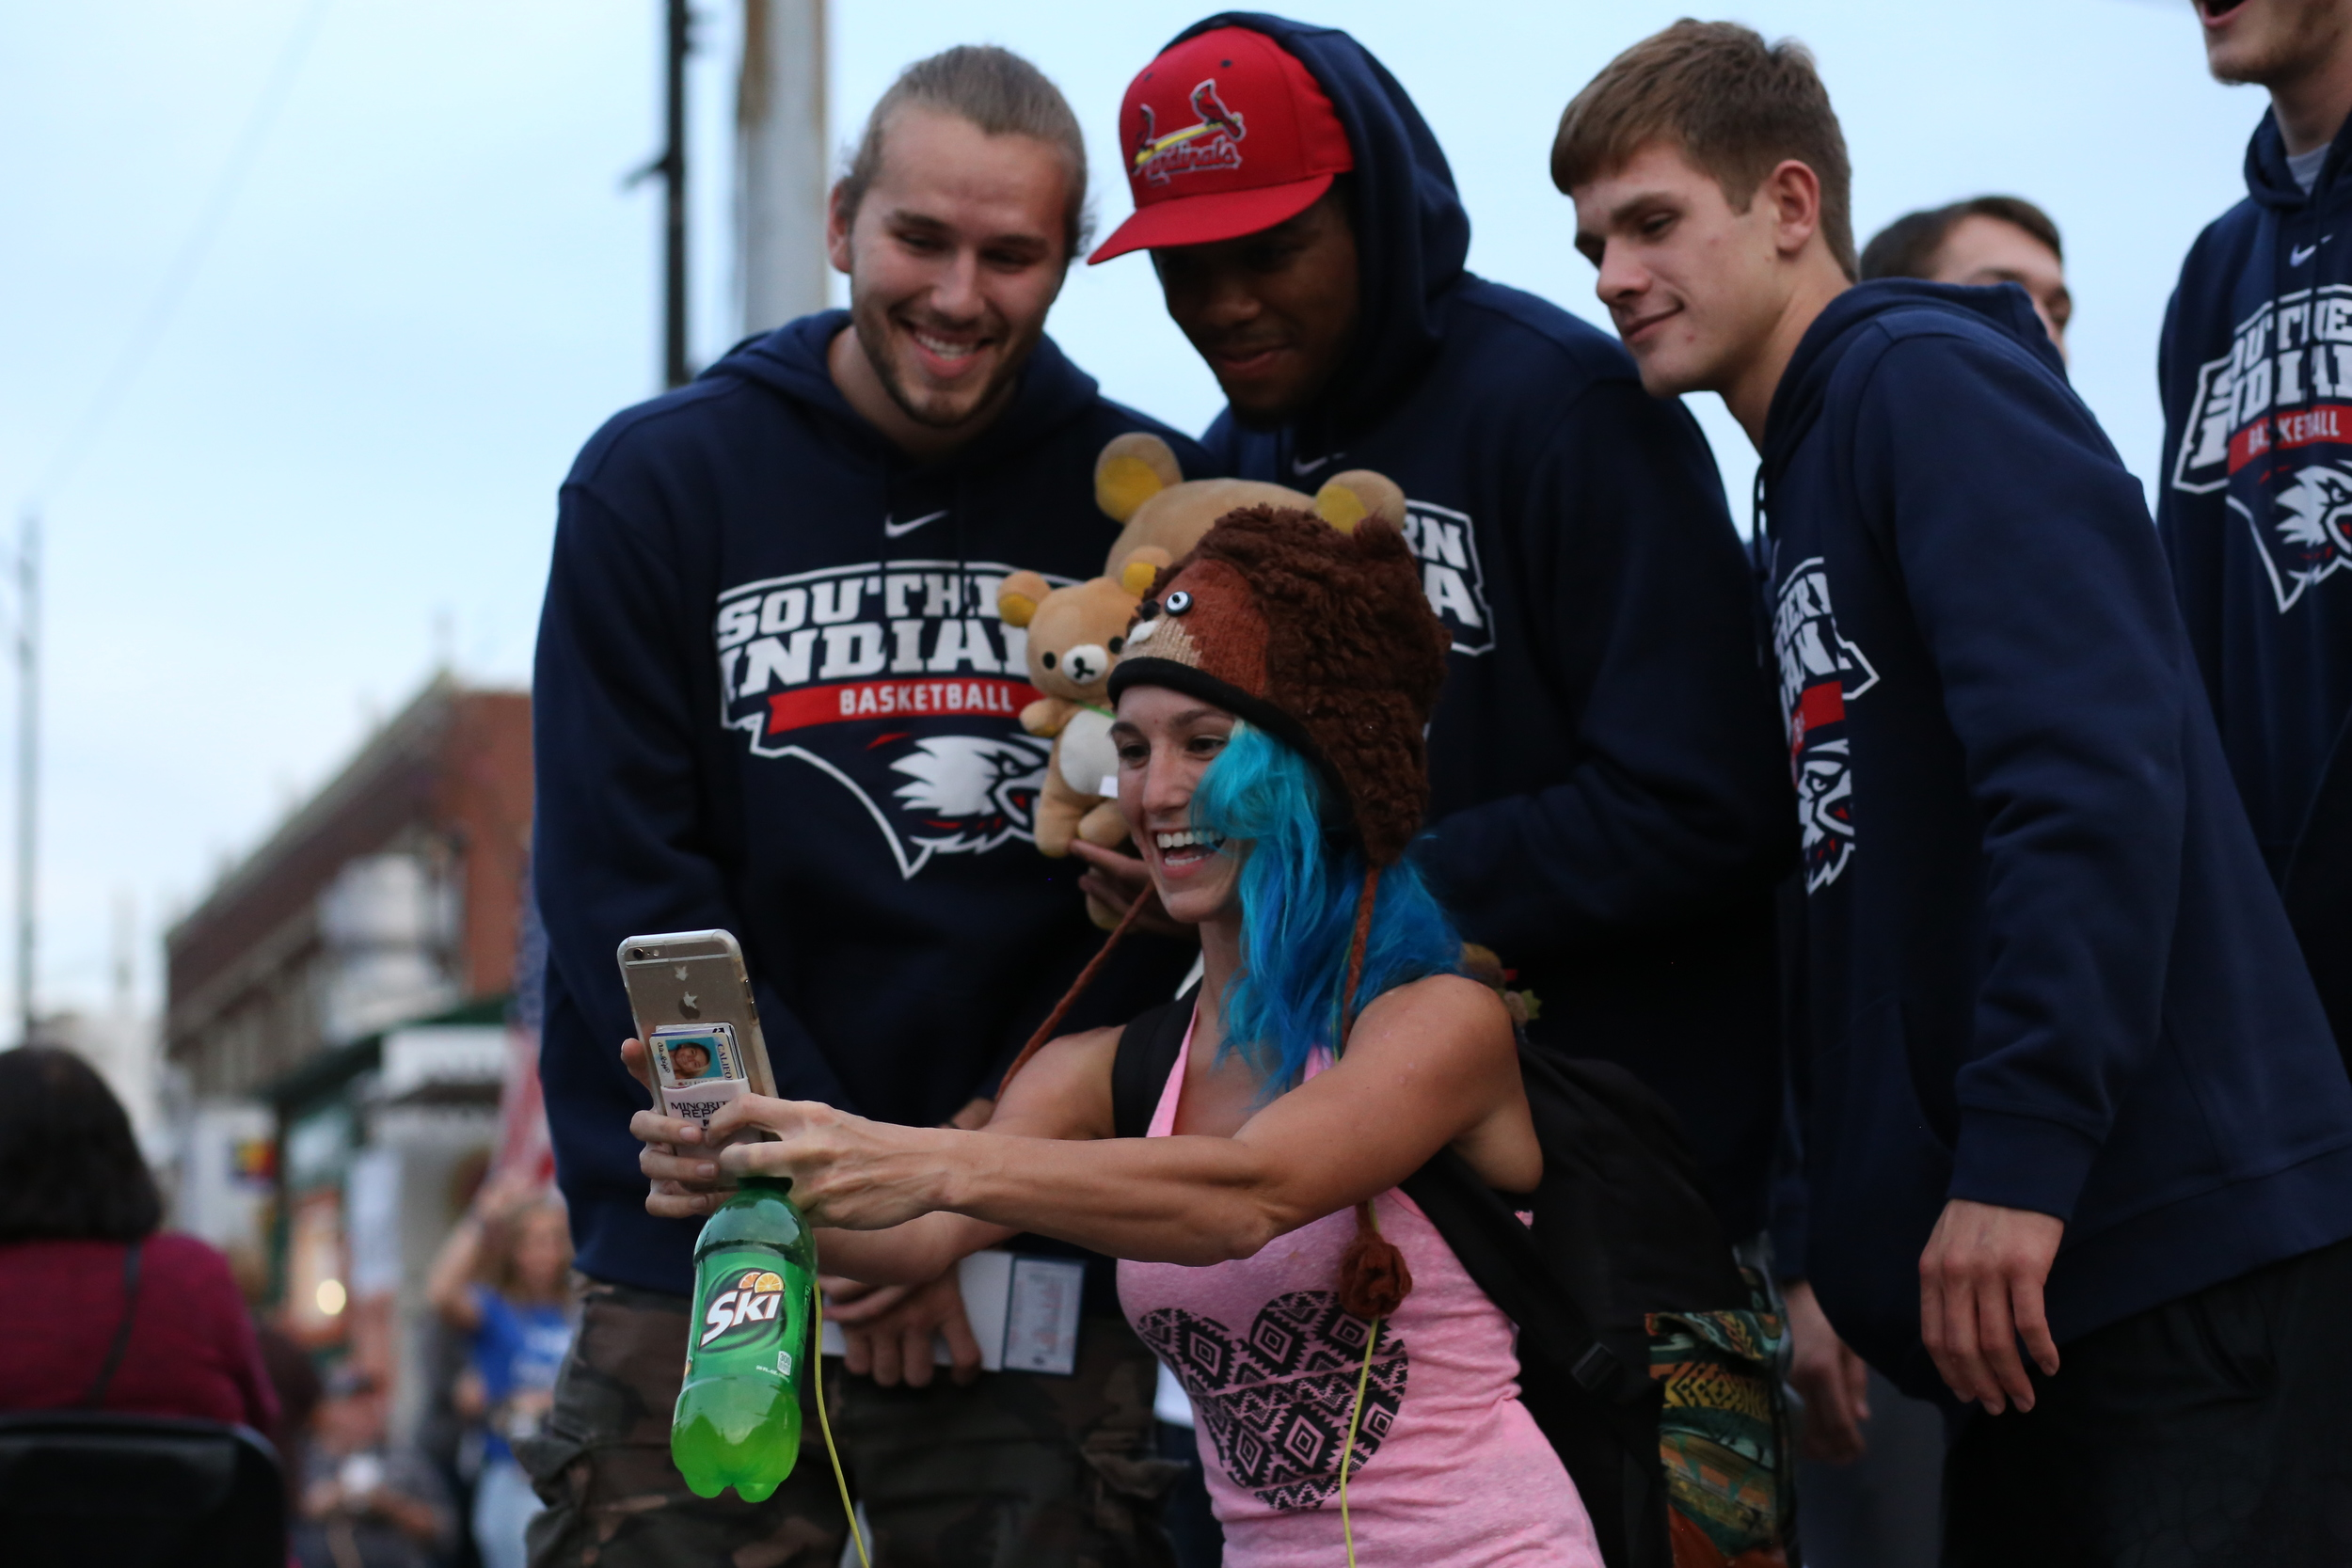 "Alex Bigge (front), a fan visiting from Los Angeles, California, poses for a selfie with team members Shane Seniour (left), a senior forward, Terrence Tisdell (middle), a junior forward and Alex Stein (right) a freshman guard at the West Side Nut Club Fall Festival in October of 2015. Bigge's brother is a student at USI and she said, ""Im only in town a couple times a year, so I had to get a picture with the boys."" (Shot for The Shield)"